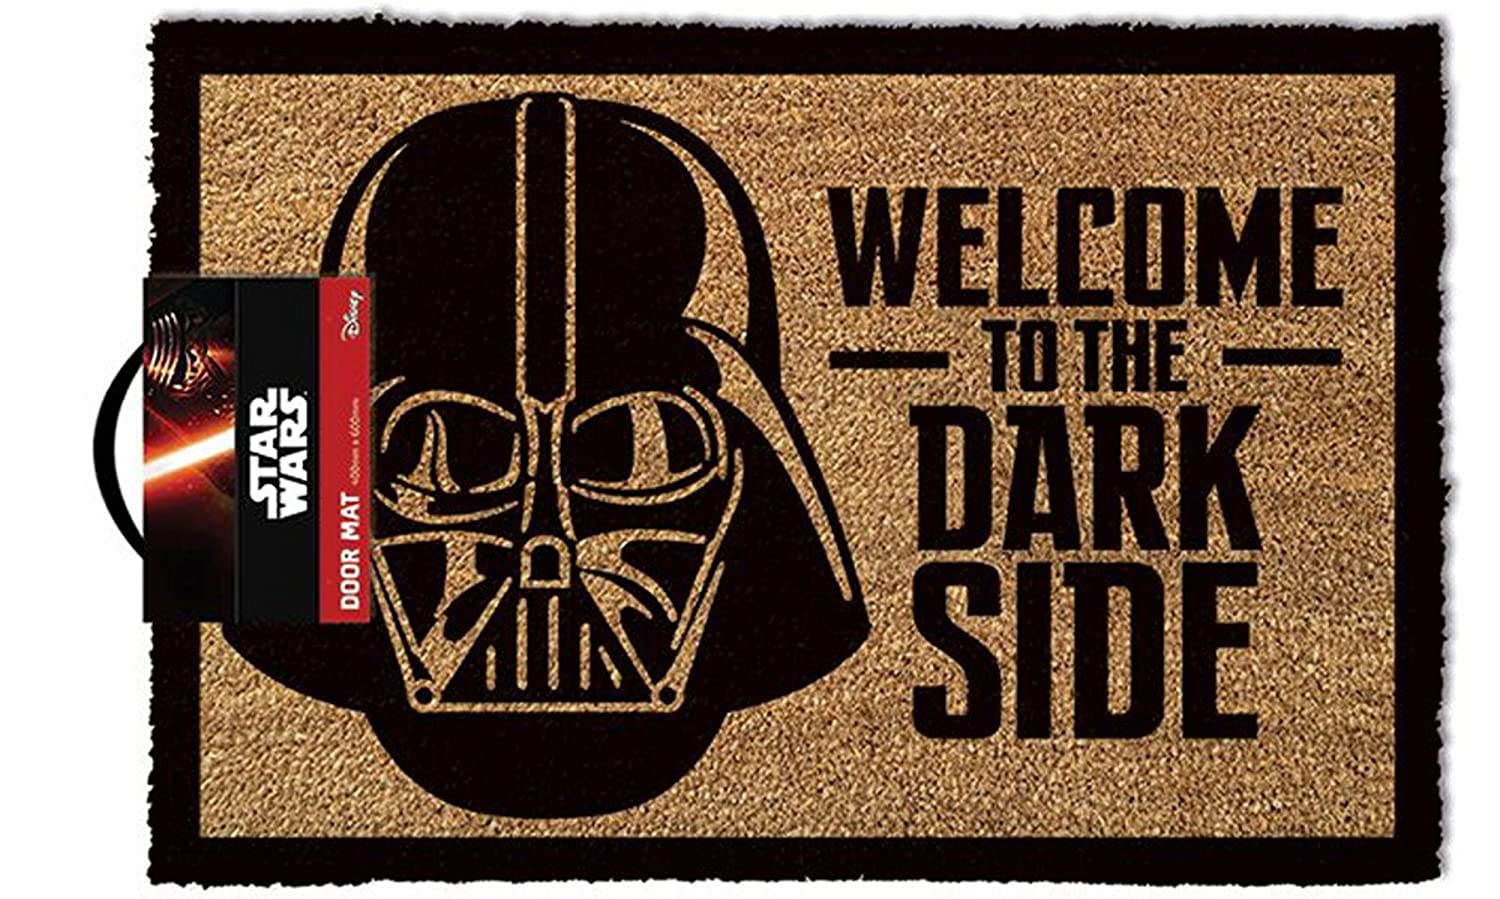 empireposter Star Wars Welcome to The Darkside – Felpudo, tamaño: 60 x 40 cm, Material Fibra de Coco